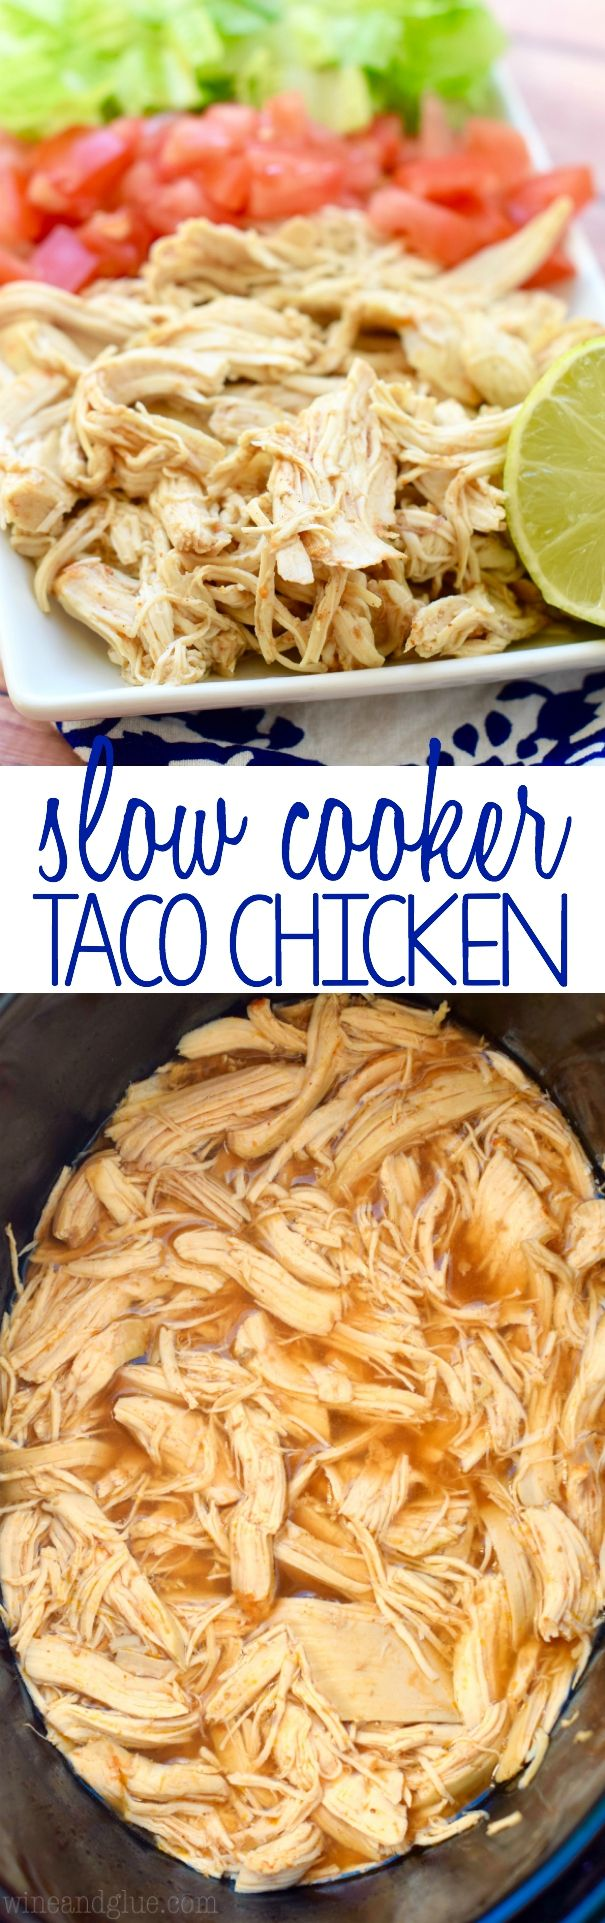 This Slow Cooker Taco Chicken is super simple to make, but it is the start of so many delicious dinners! It needs to be part of